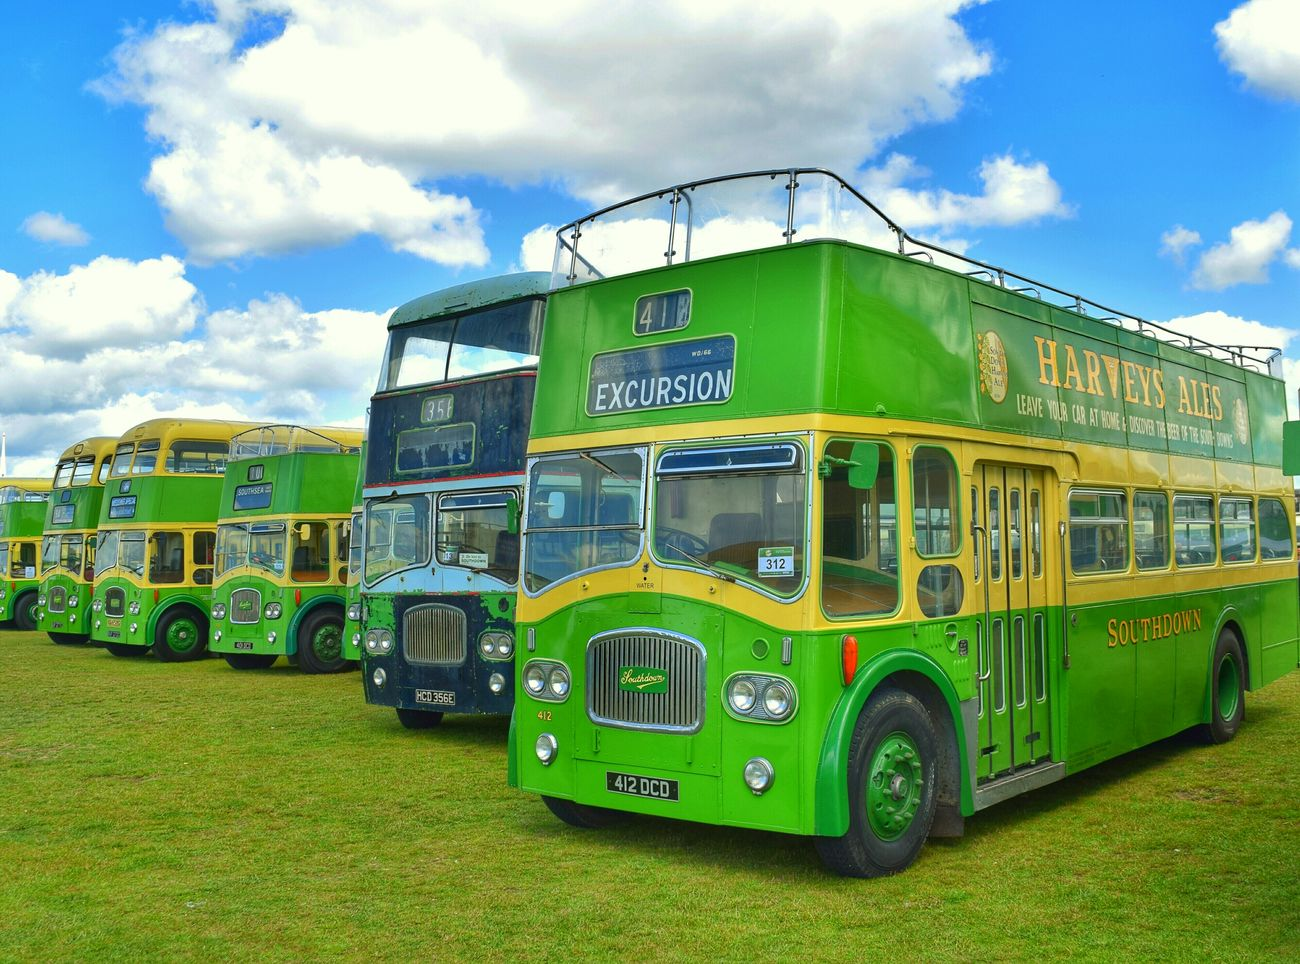 Bus Show Bus Green Retro Old Taking Photos Enjoying Life Sunlight Sky And Clouds Light And Shadow